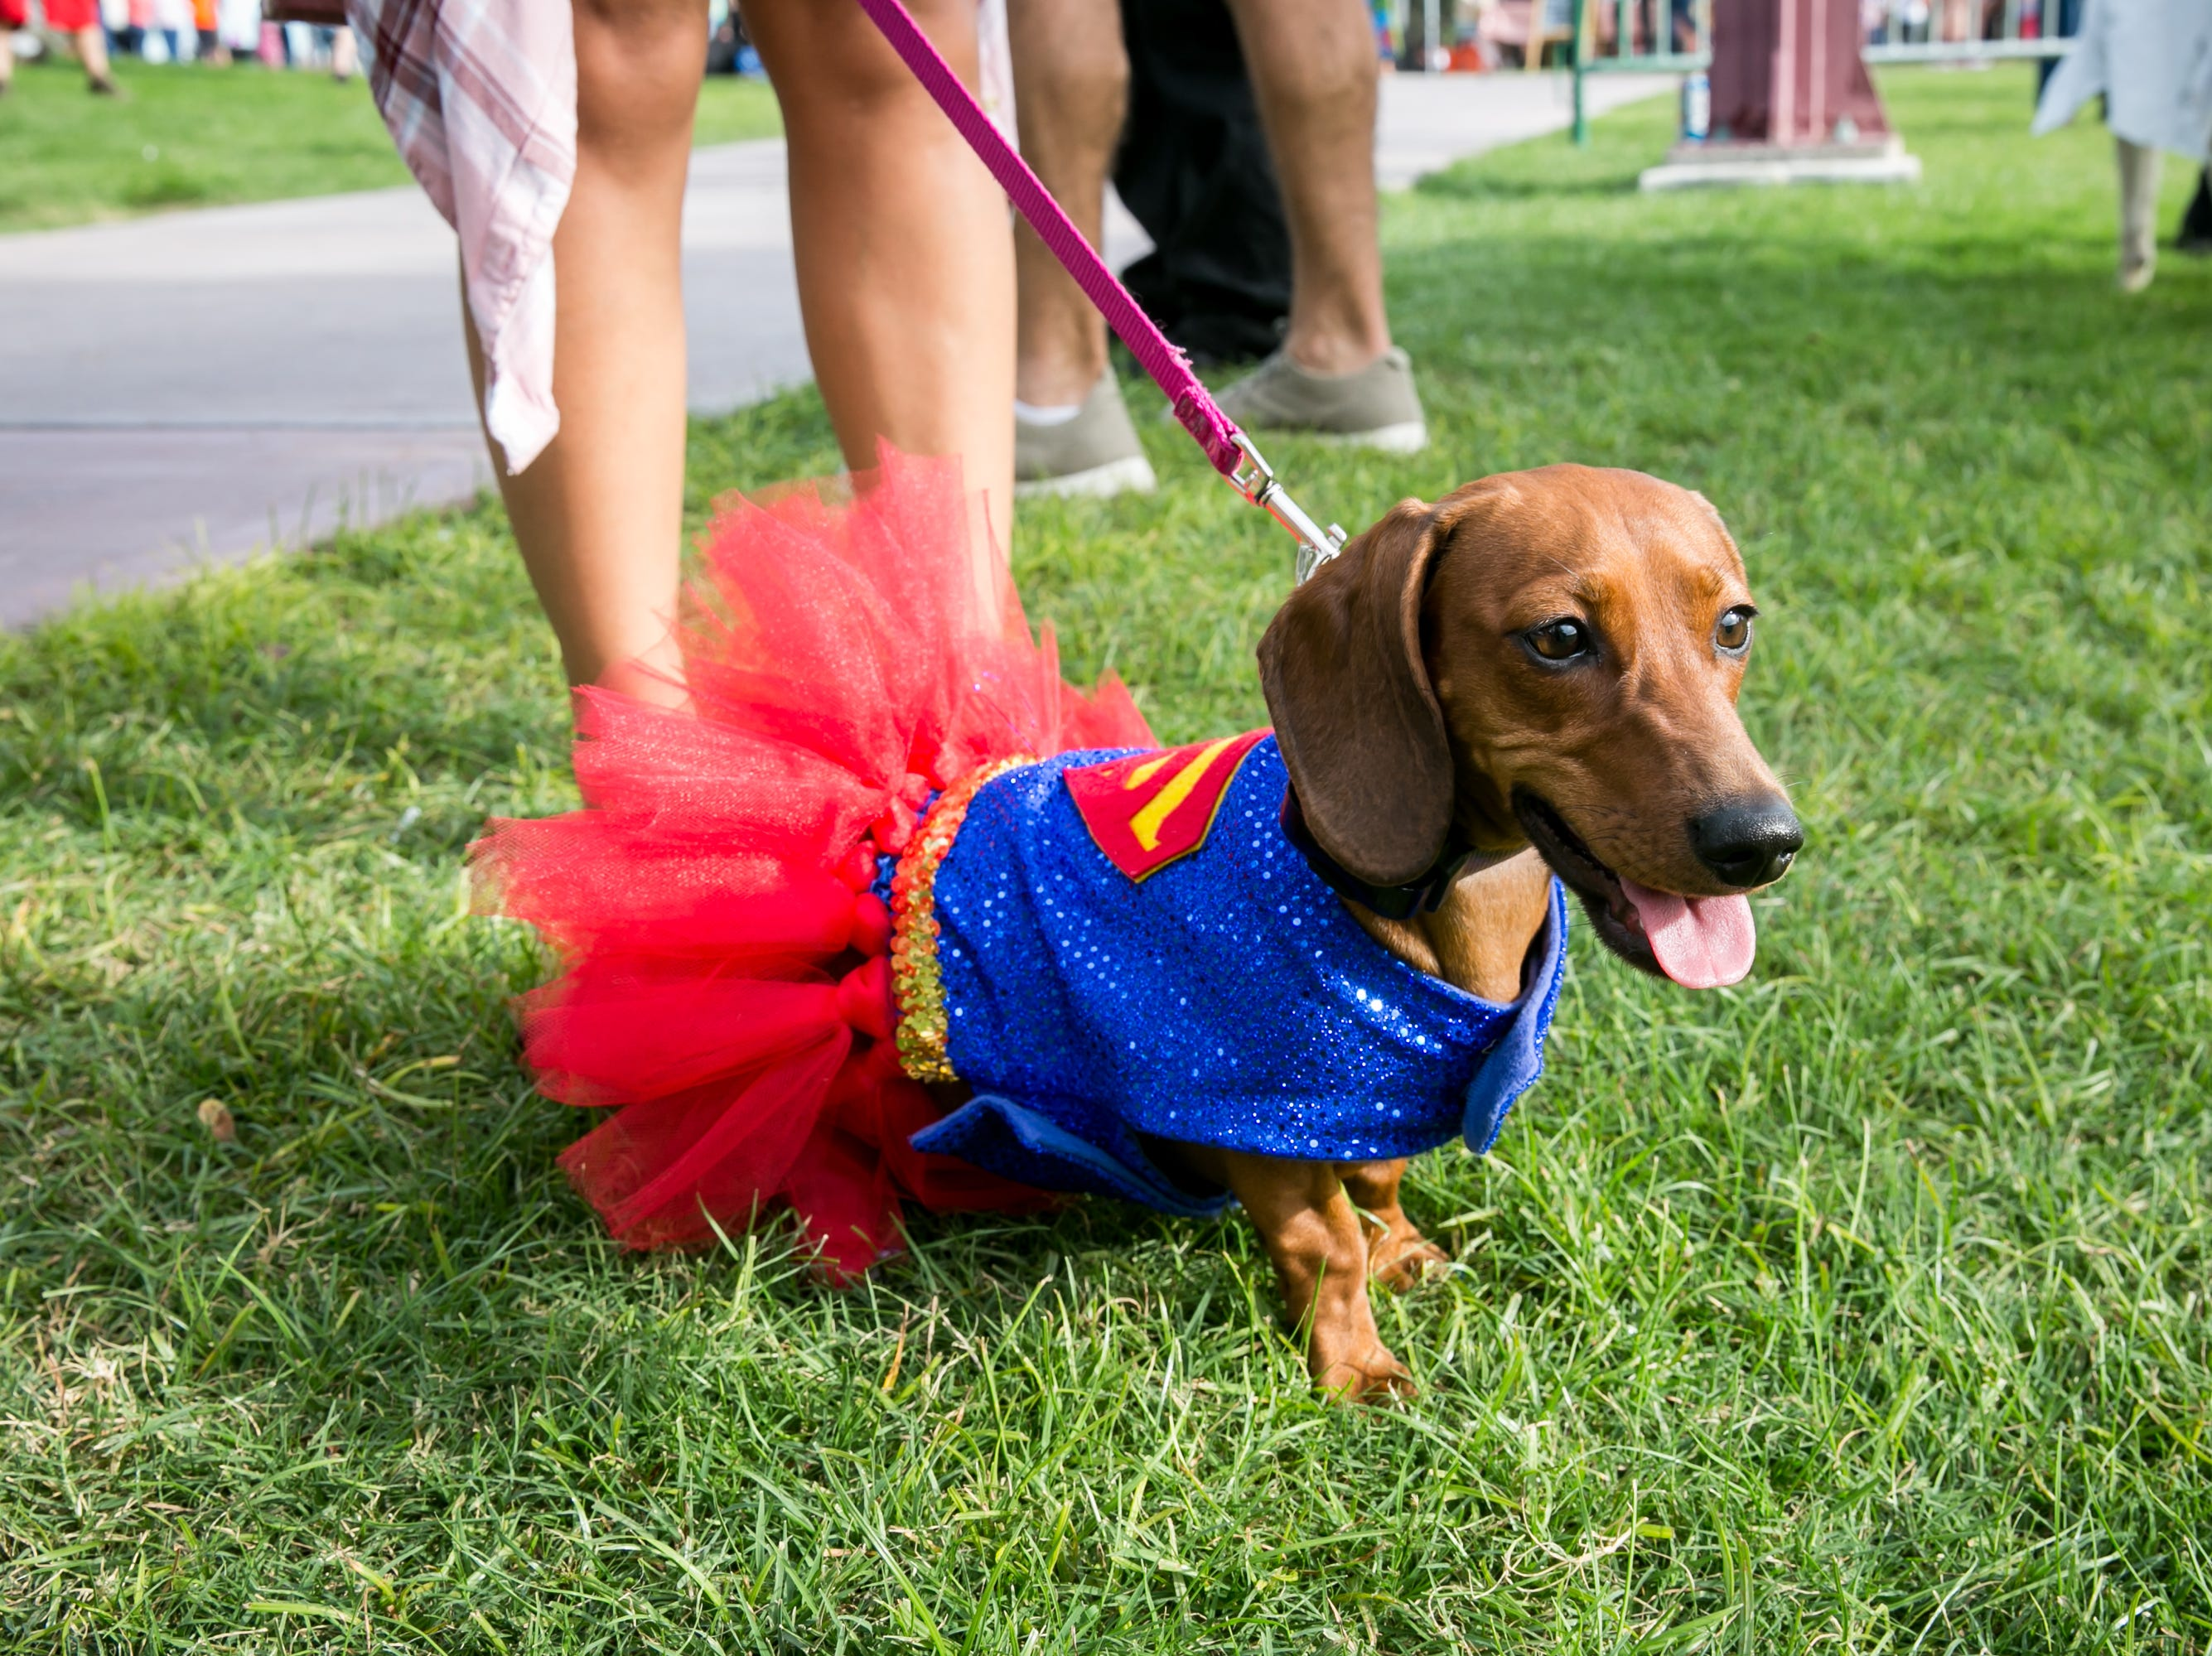 This Superman dog looked adorable during Howl-o-Ween at Hance Park on Sunday, October 28, 2018.